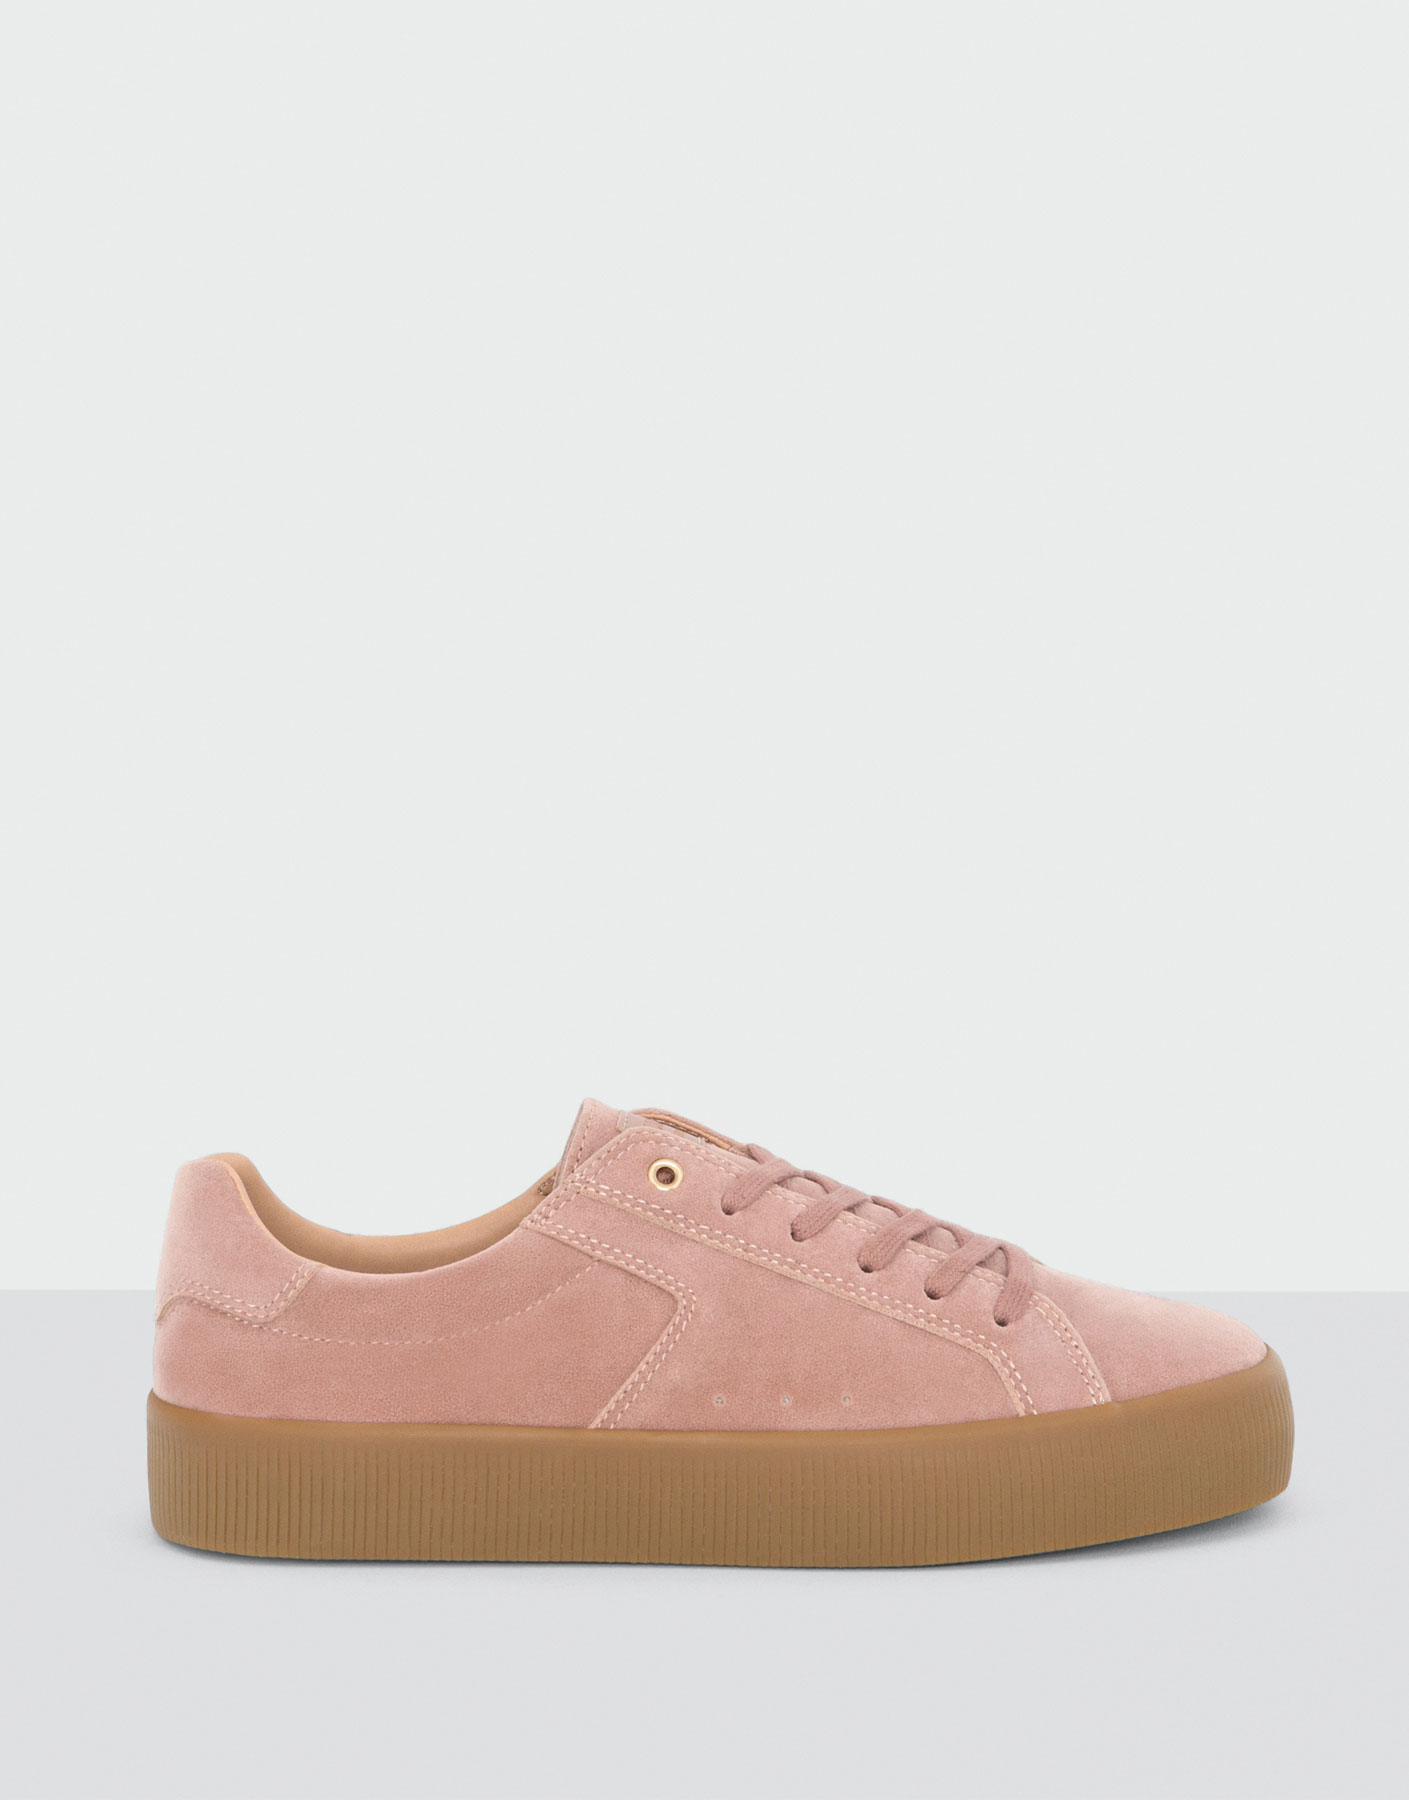 Nude plimsolls with caramel sole